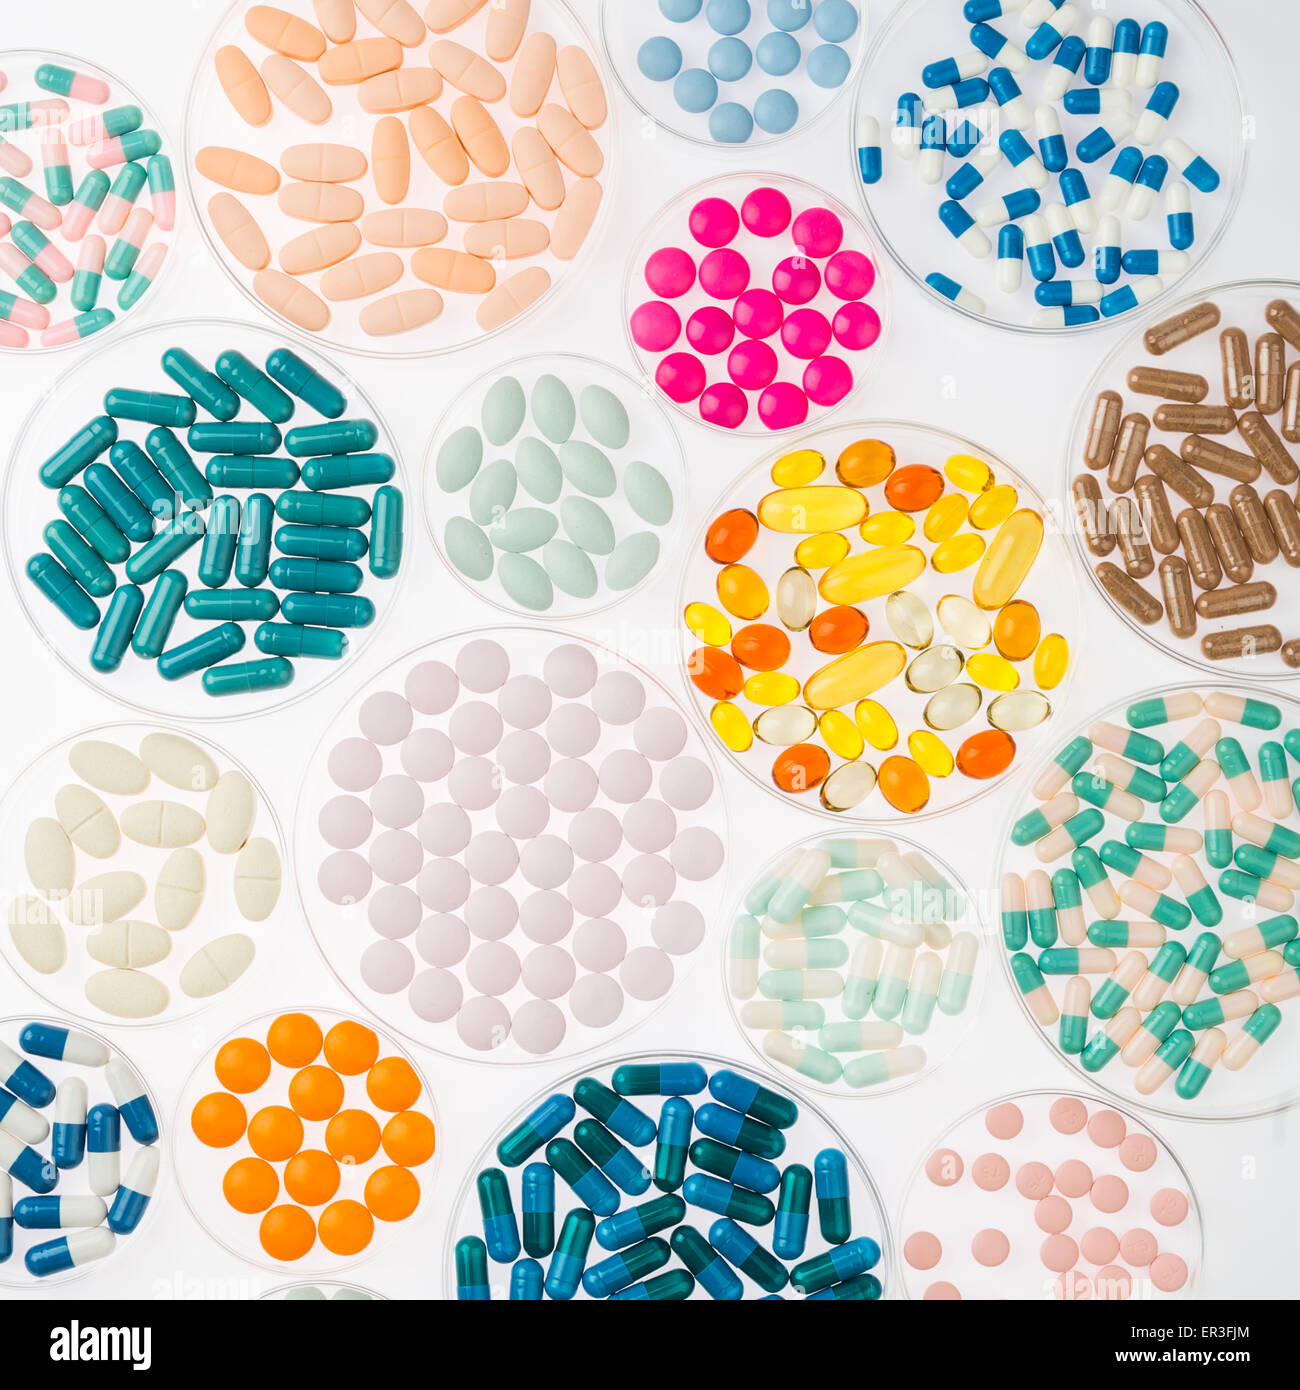 Pharmaceutical Research, conceptual image. Photo Stock